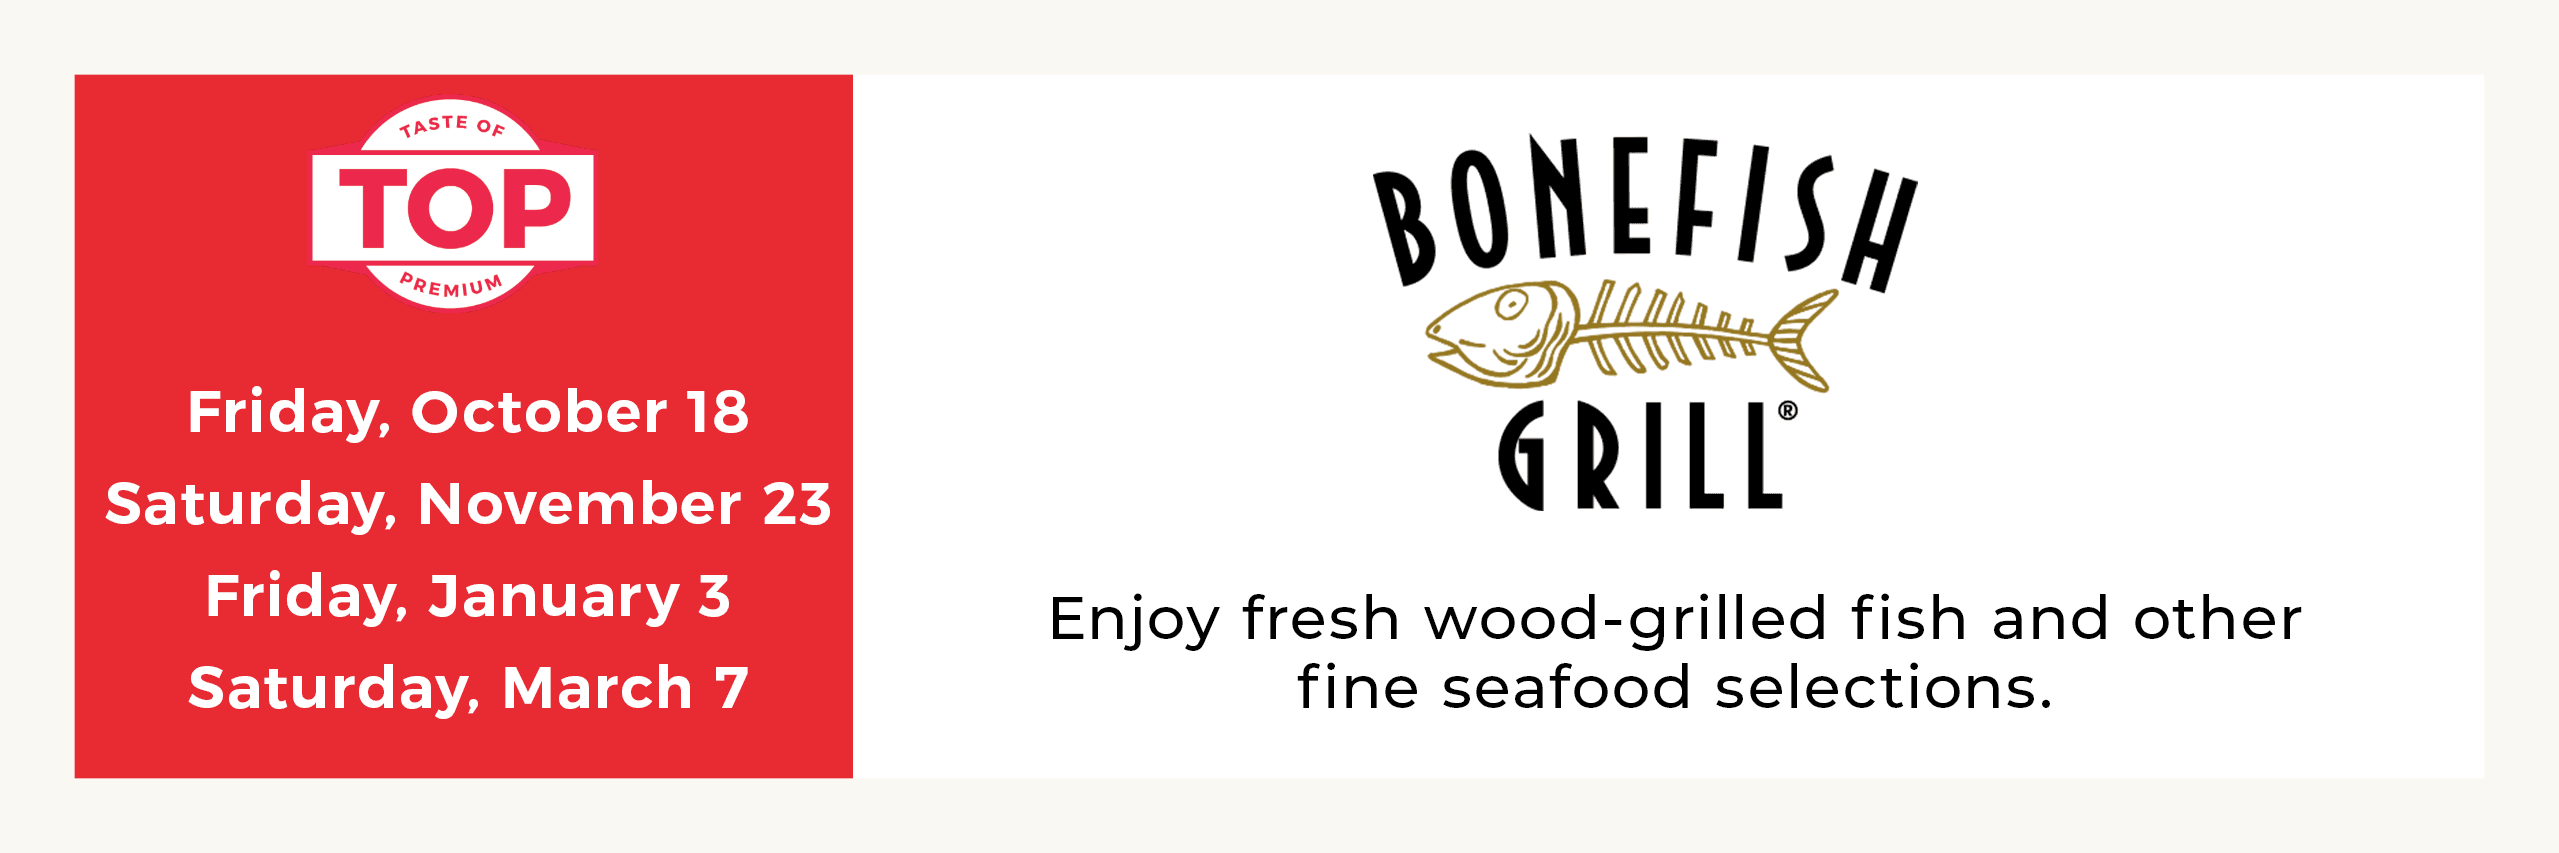 Bonefish Grill Meal Service Dates Opens in new window